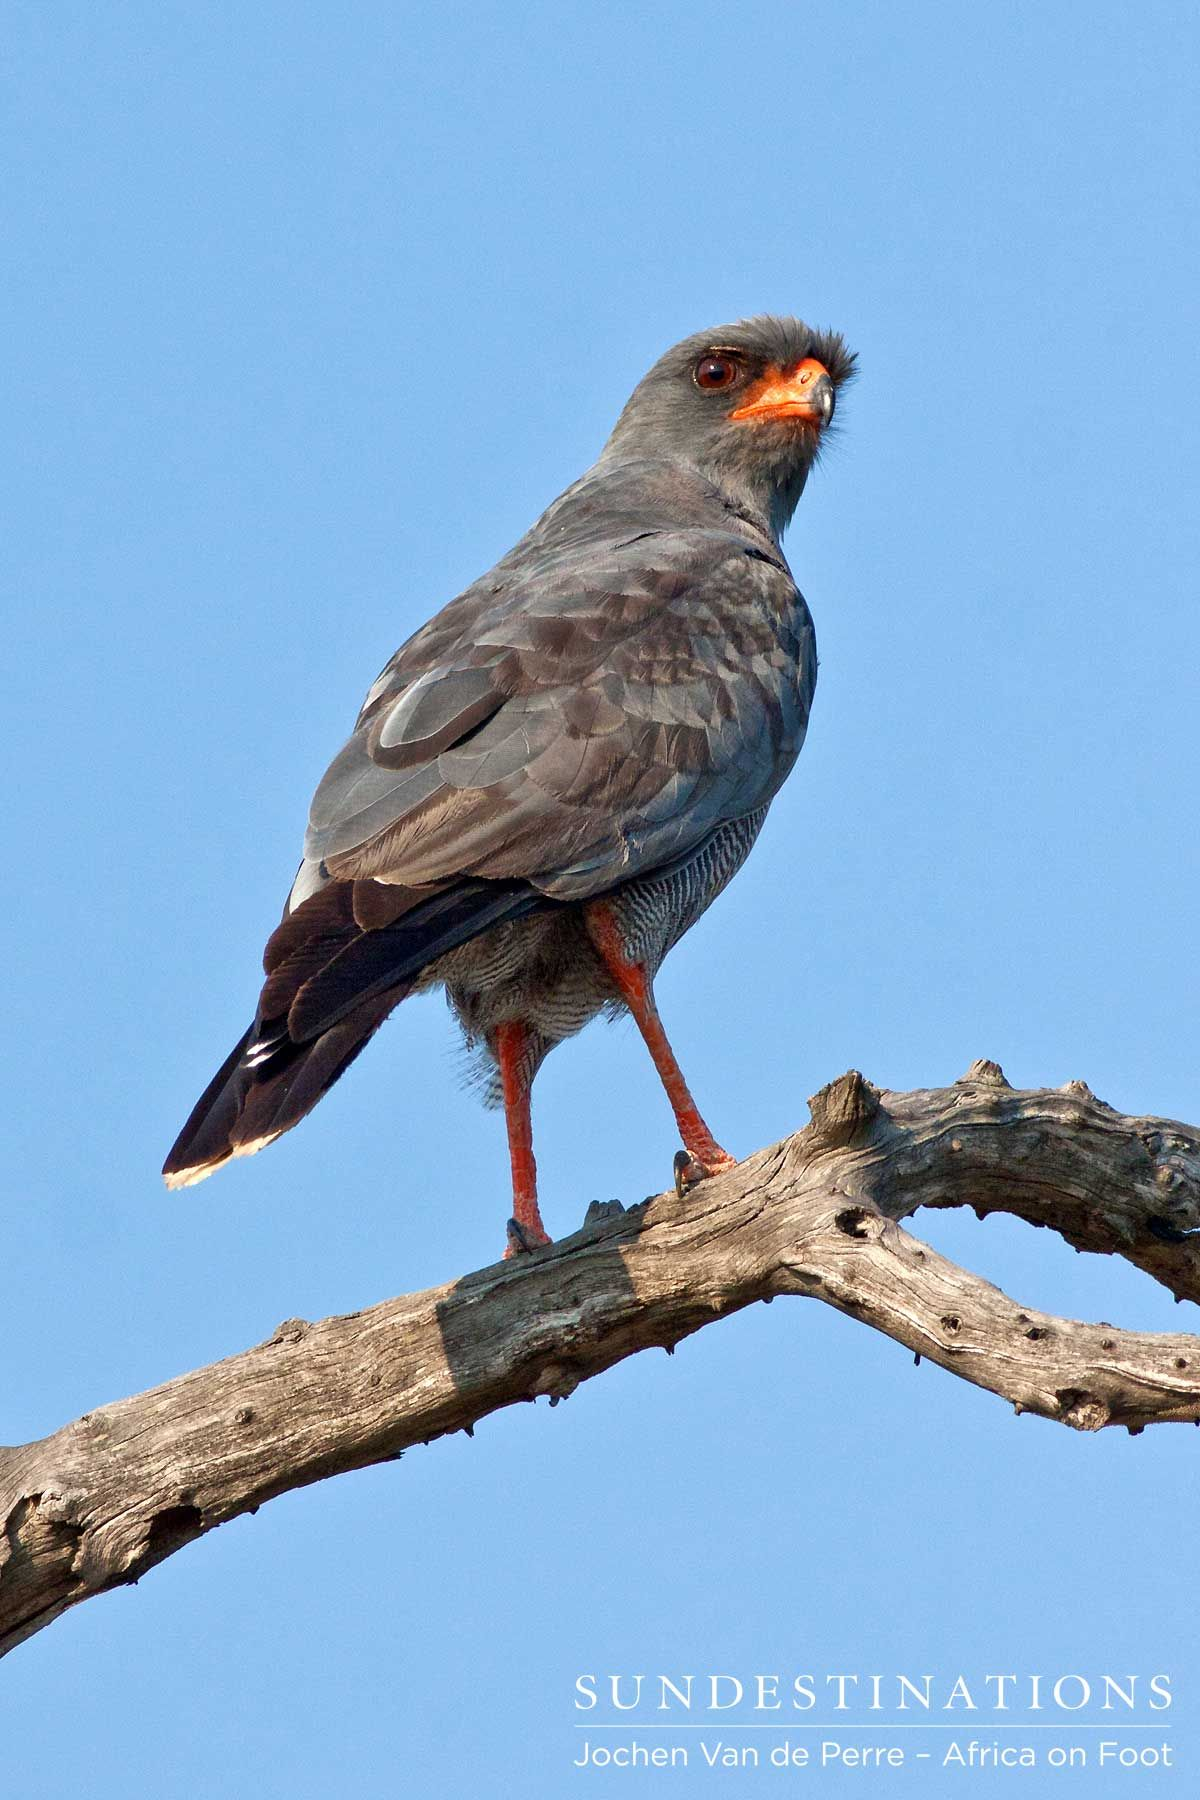 Pale-chanting goshawk : This bird of prey is easily identifiable by its bright orange legs and matching beak. The goshawk has a distinct call, which is quite melodious in nature.  #raptors #birdsofprey #krugerbirding africaonfoot #goshawk